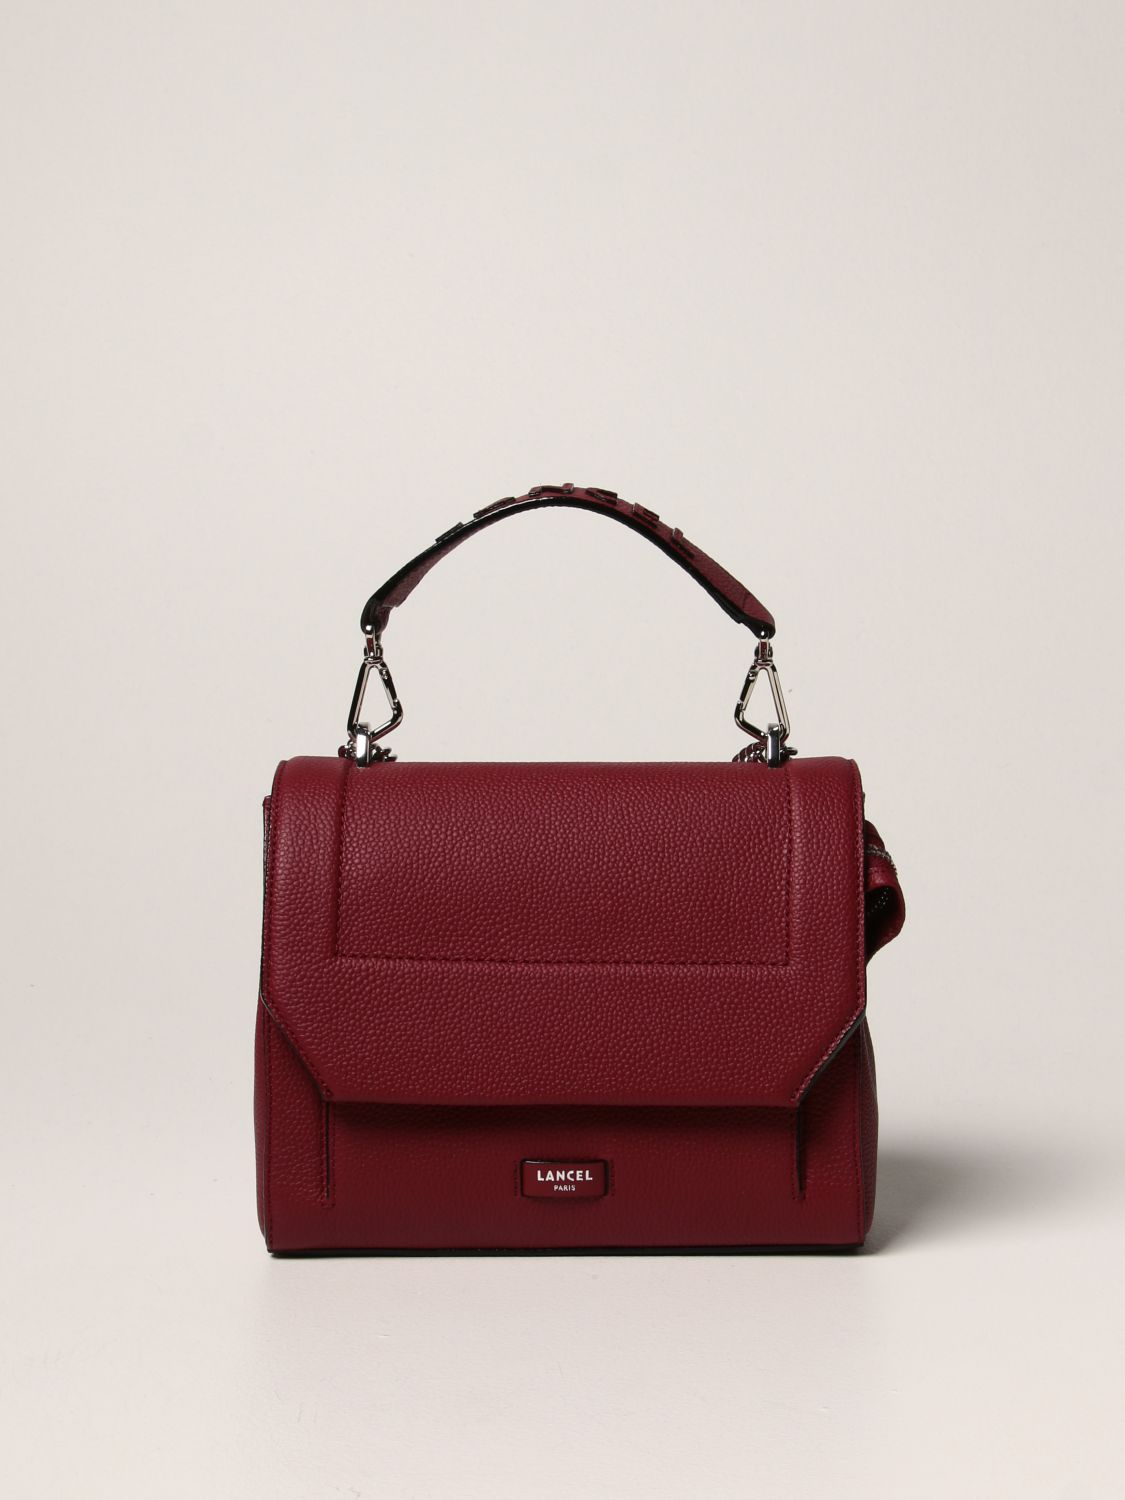 Lancel Bag In Grained Leather In Burgundy